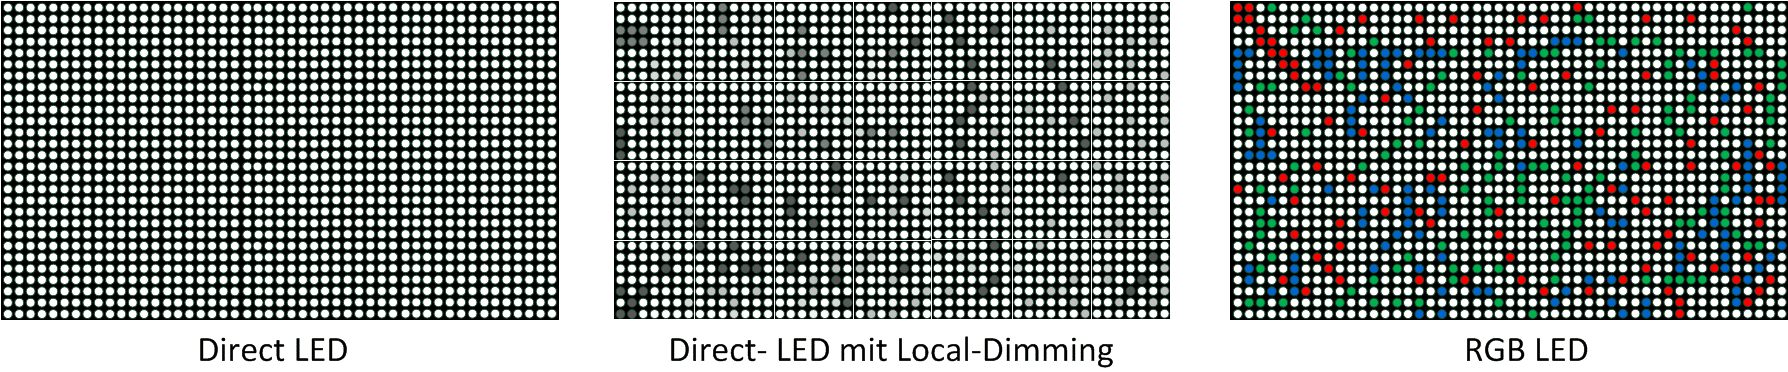 Micro LED Display Technologie - Direct LED Display-Hintergrundbeleuchtung